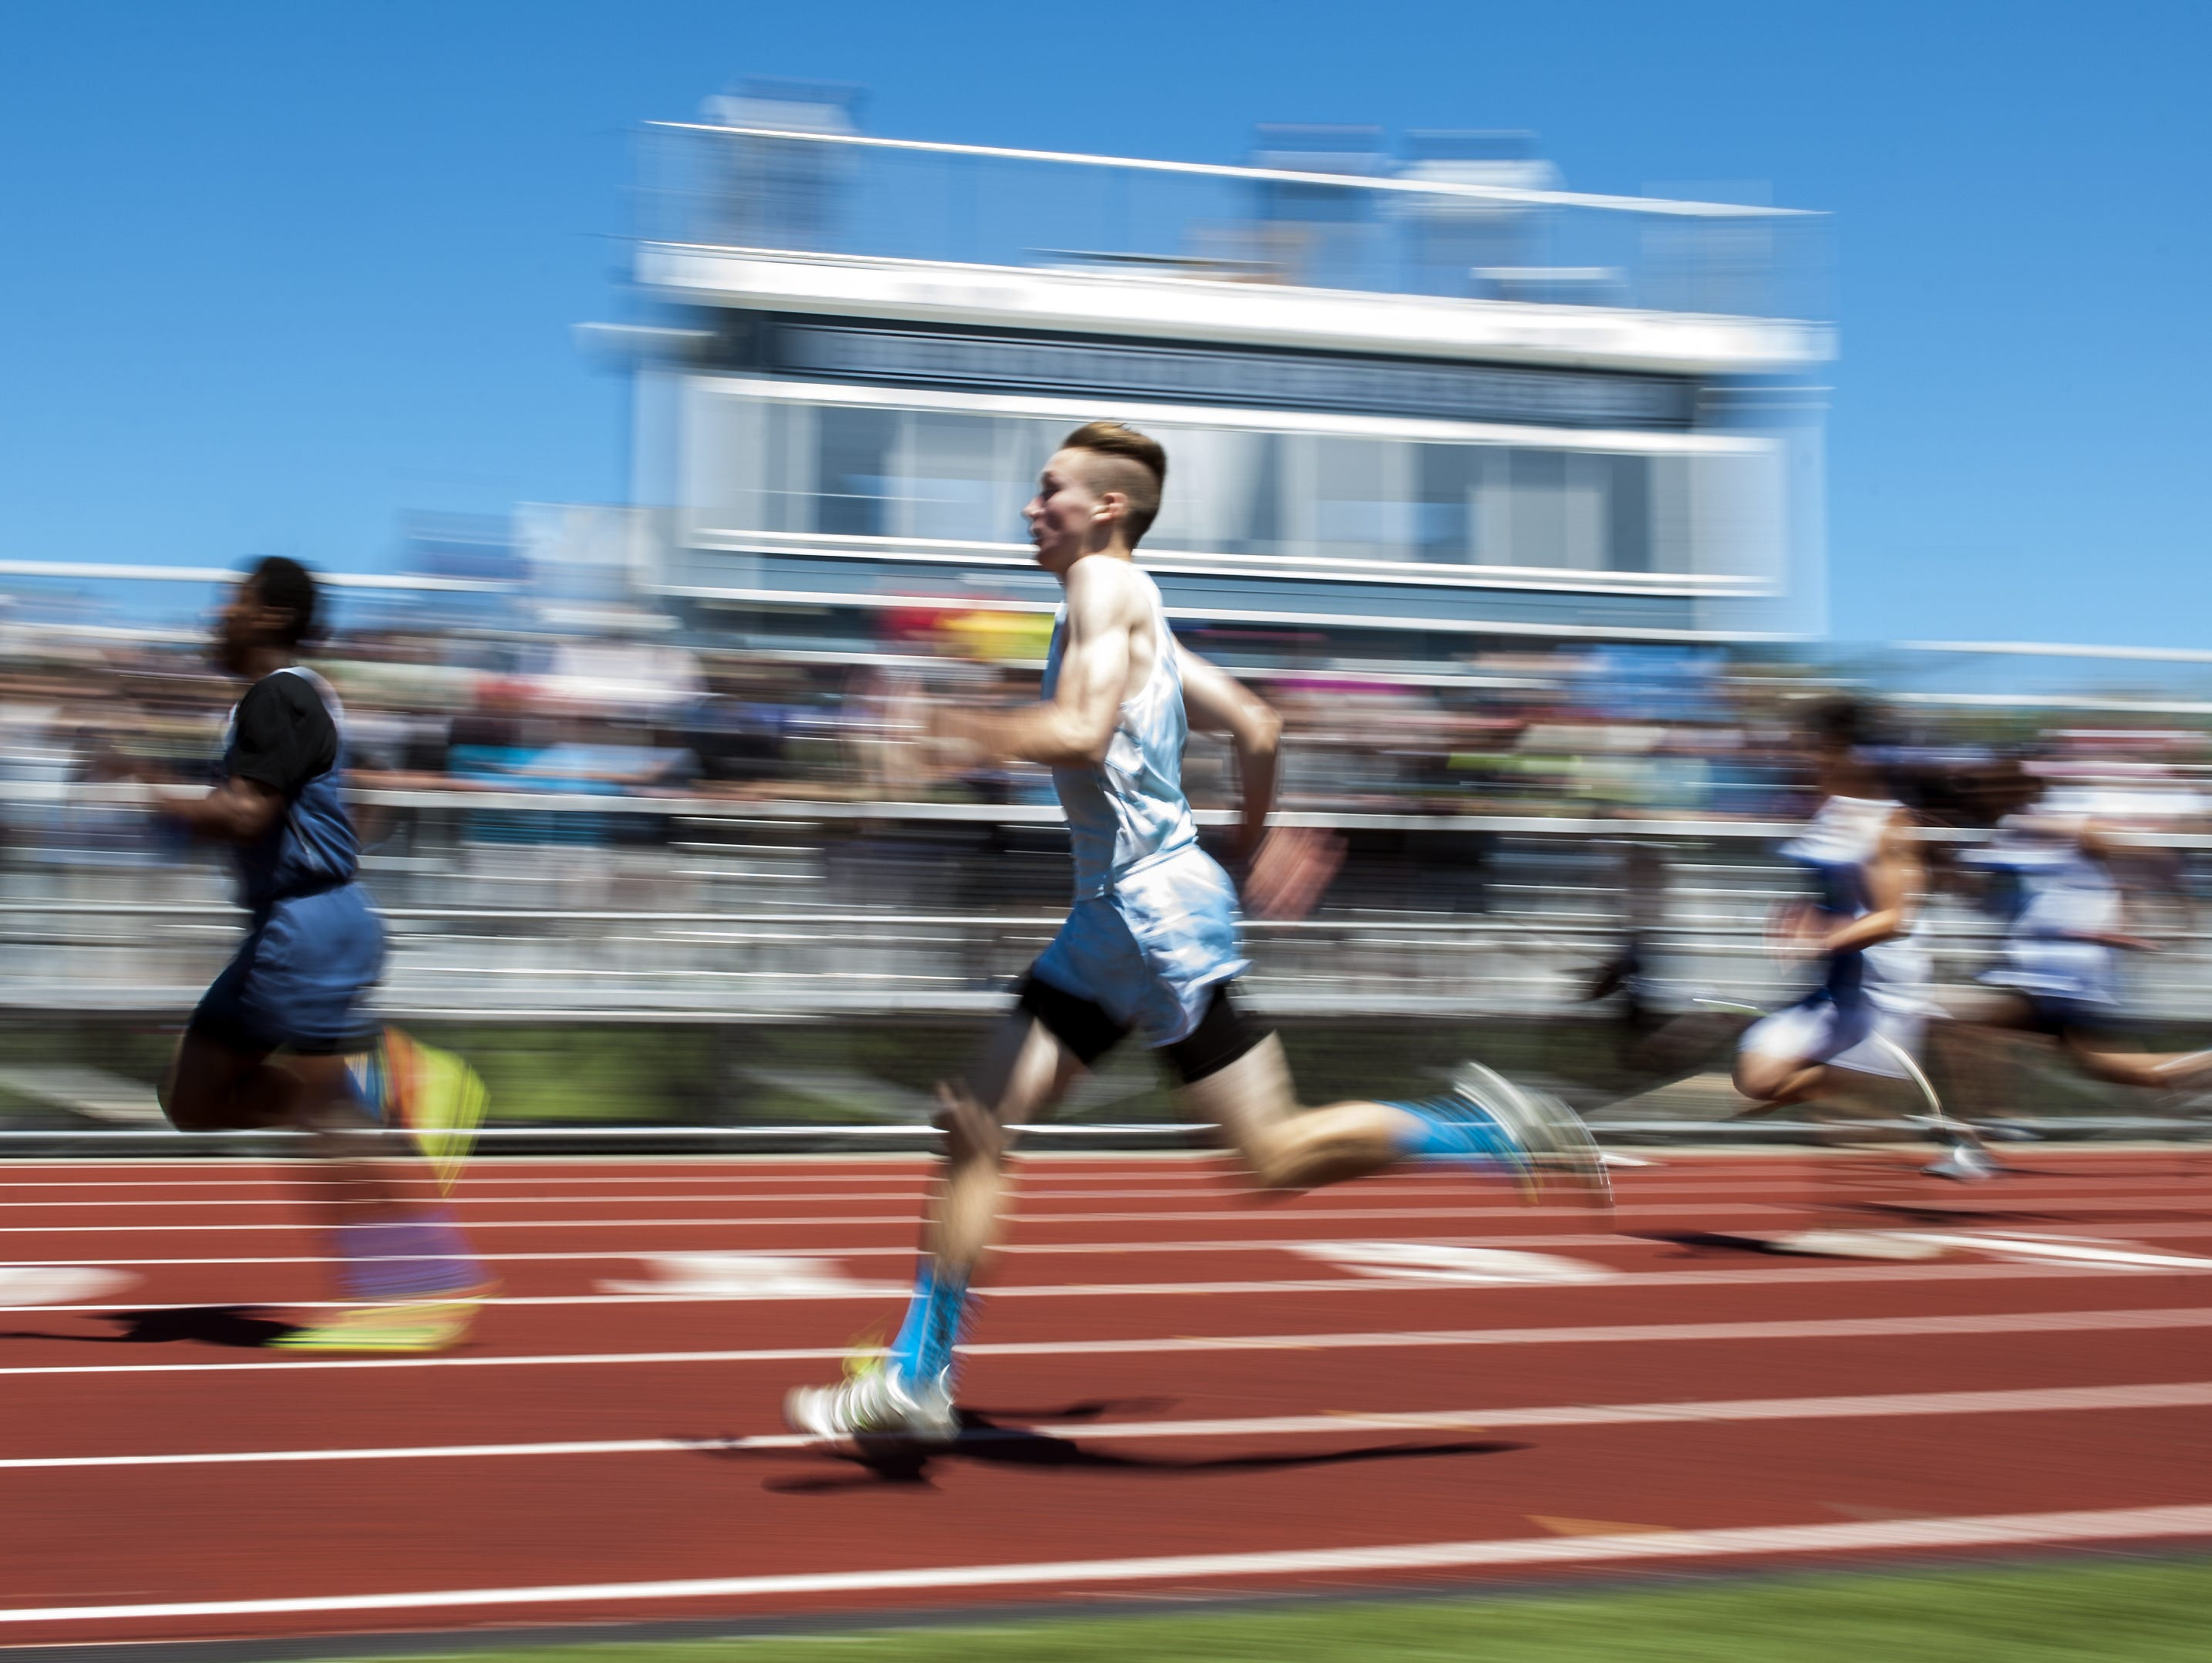 Racers compete in the 800m dash during the high school track and field state championship meet at Burlington High School on Saturday, June 6.